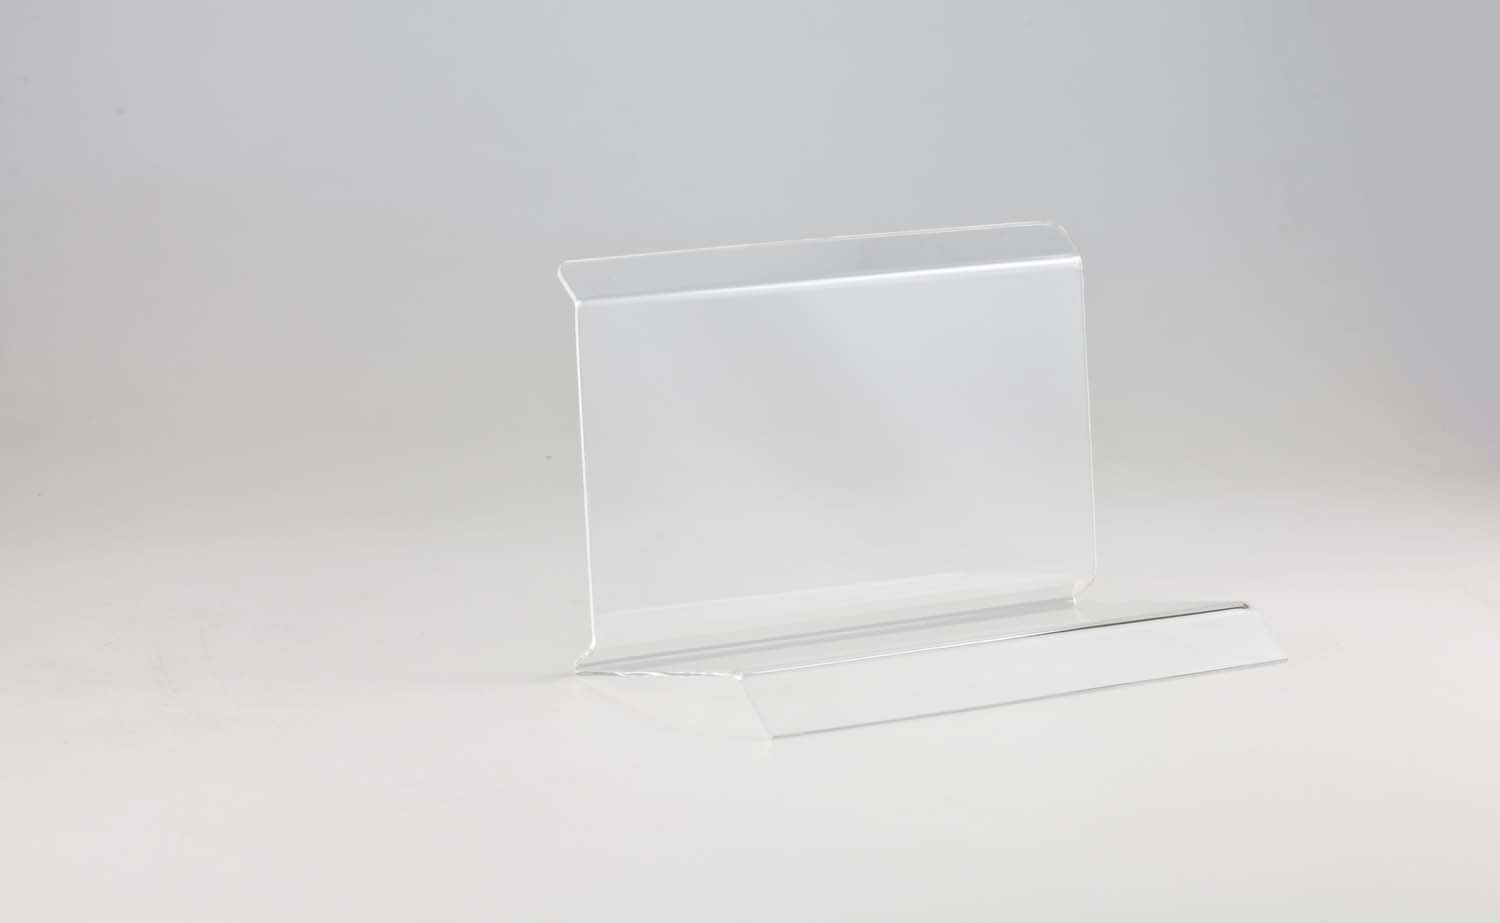 acrylic dispaly rack for wallet, shoes, high level.